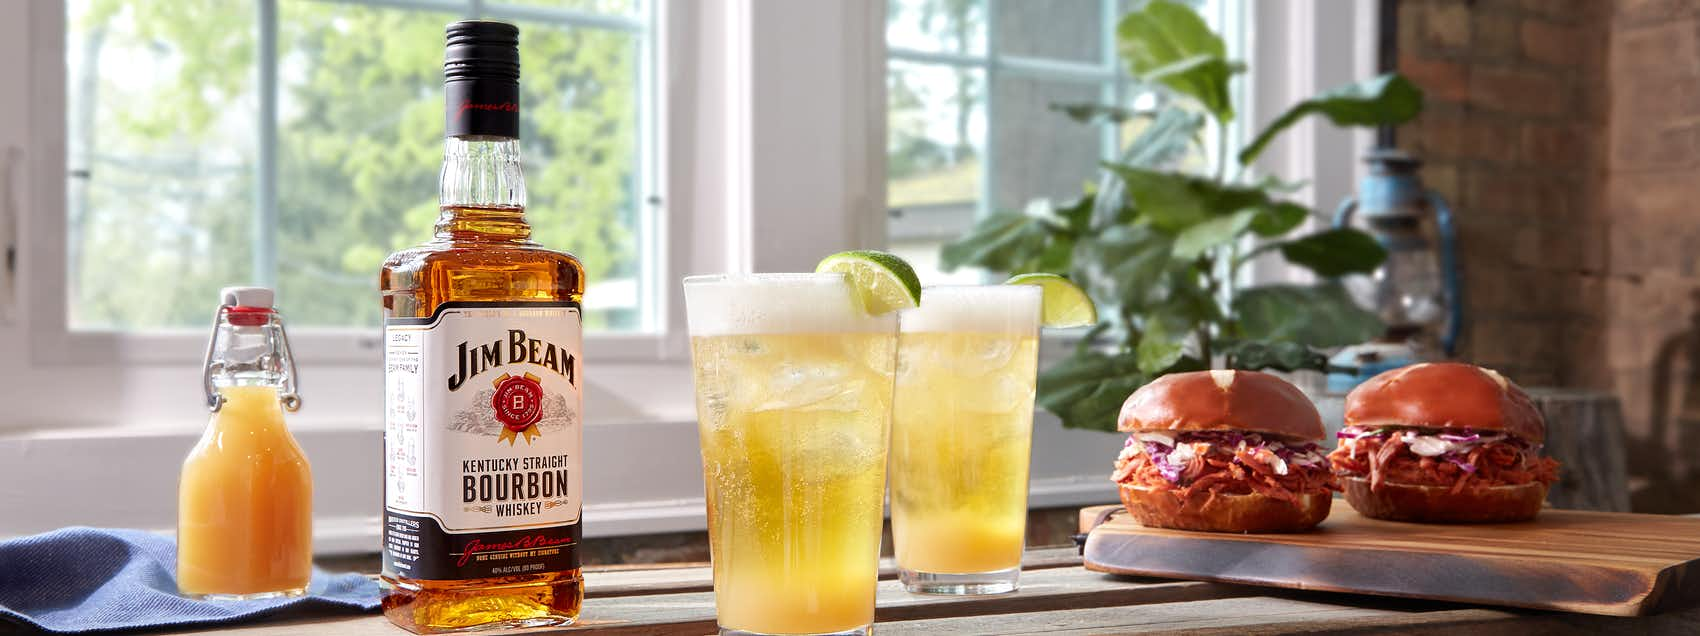 Jim Beam Ginger Shandy